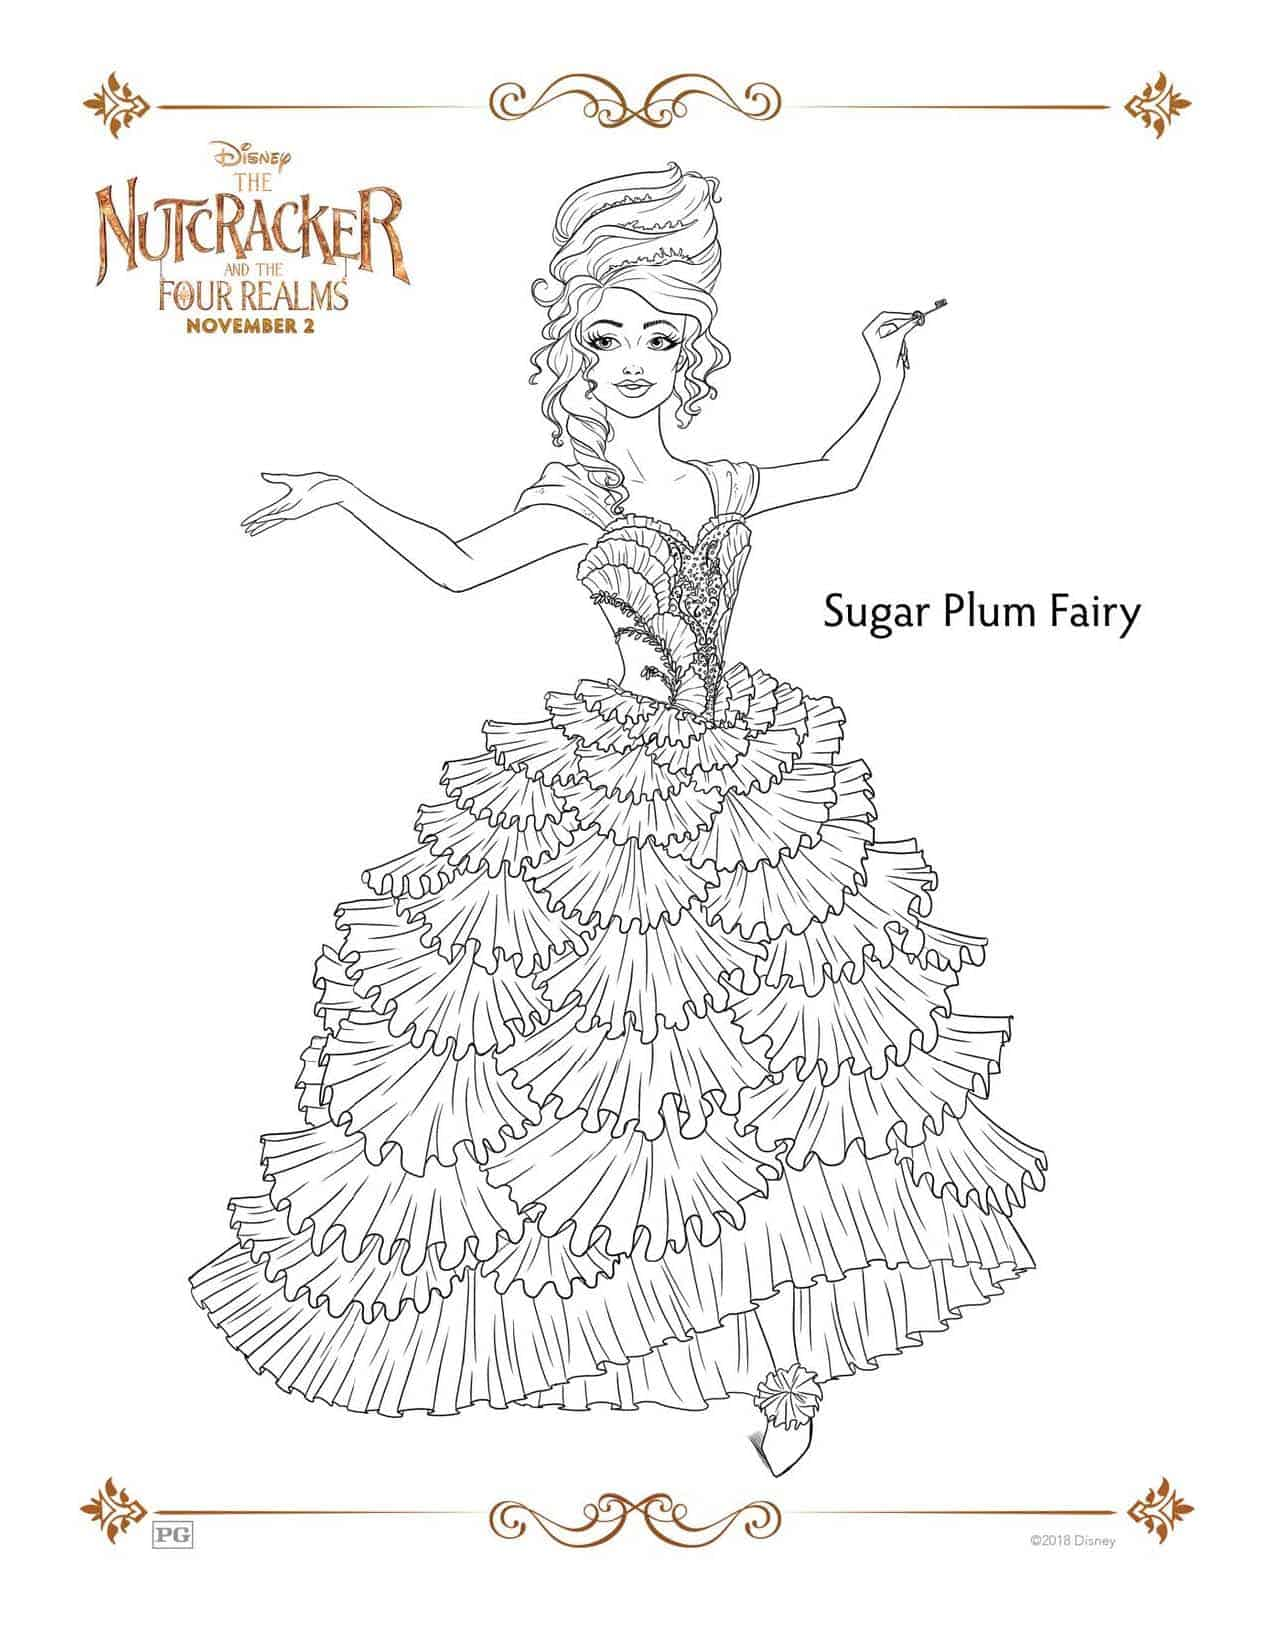 Nutcracker Coloring Page Disney S The Nutcracker And The